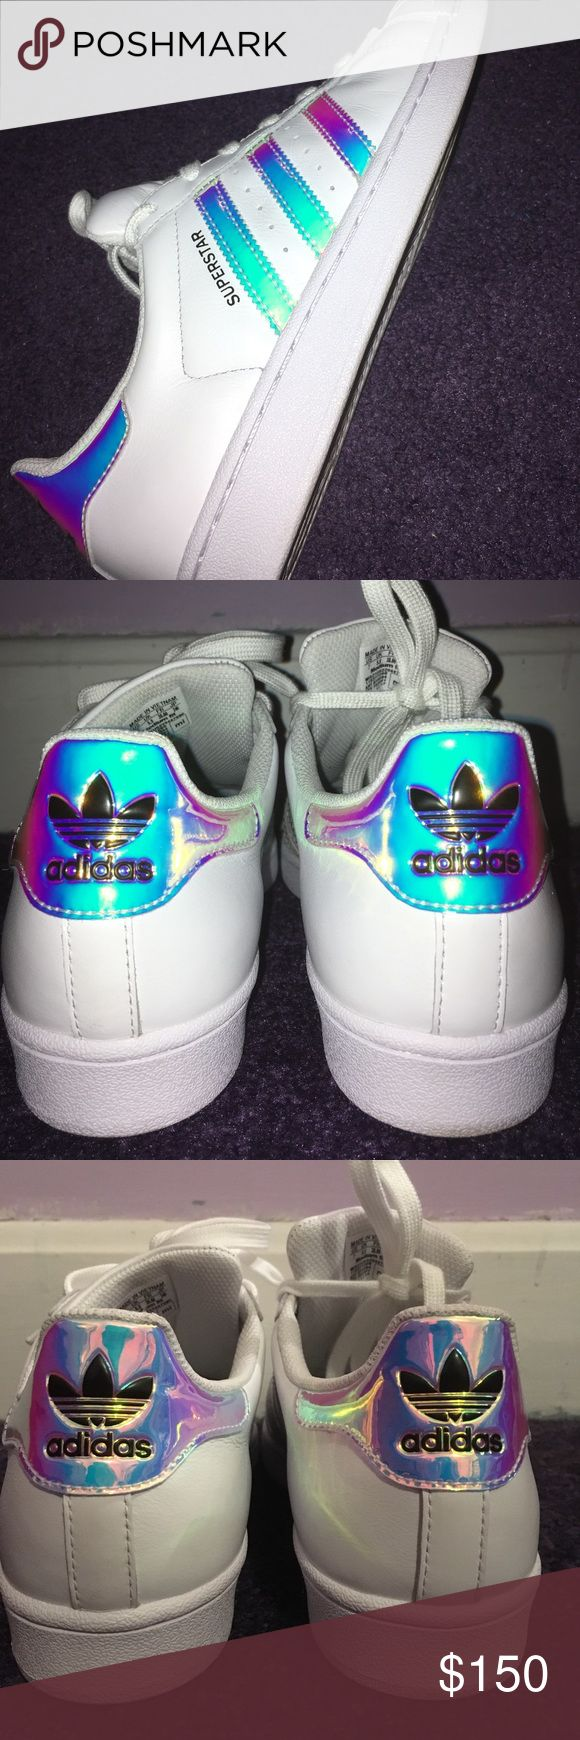 Holographic Adidas Superstars These are white Adidas Superstars with holographic detail on the stripes and back- size 7. I ordered them online but the size is slightly too big for me. They have only been worn once. They are super cute and fun. adidas Shoes Sneakers